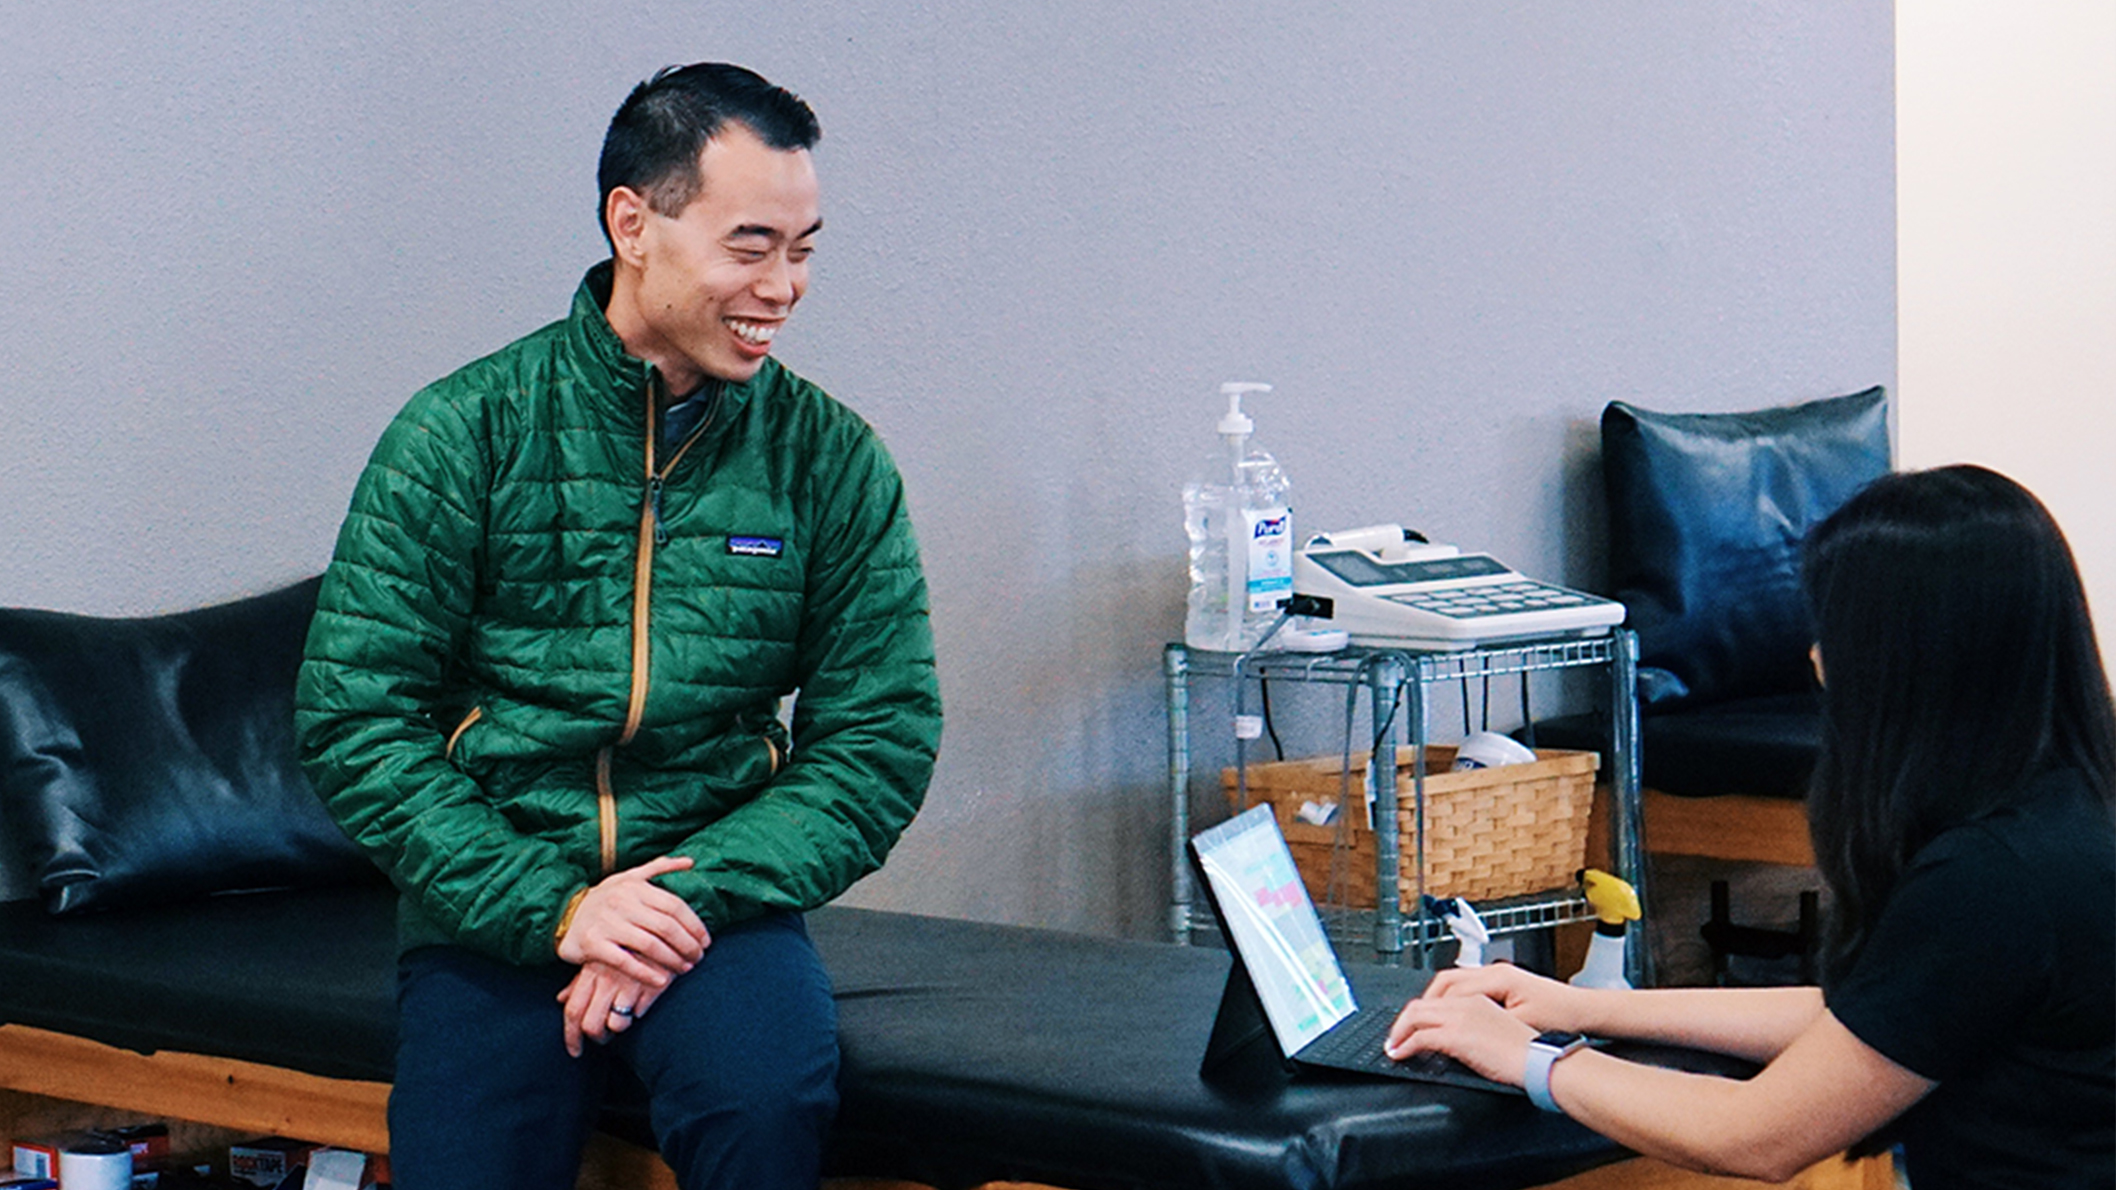 A physical therapist uses a Surface device to take notes while talking to a patient.